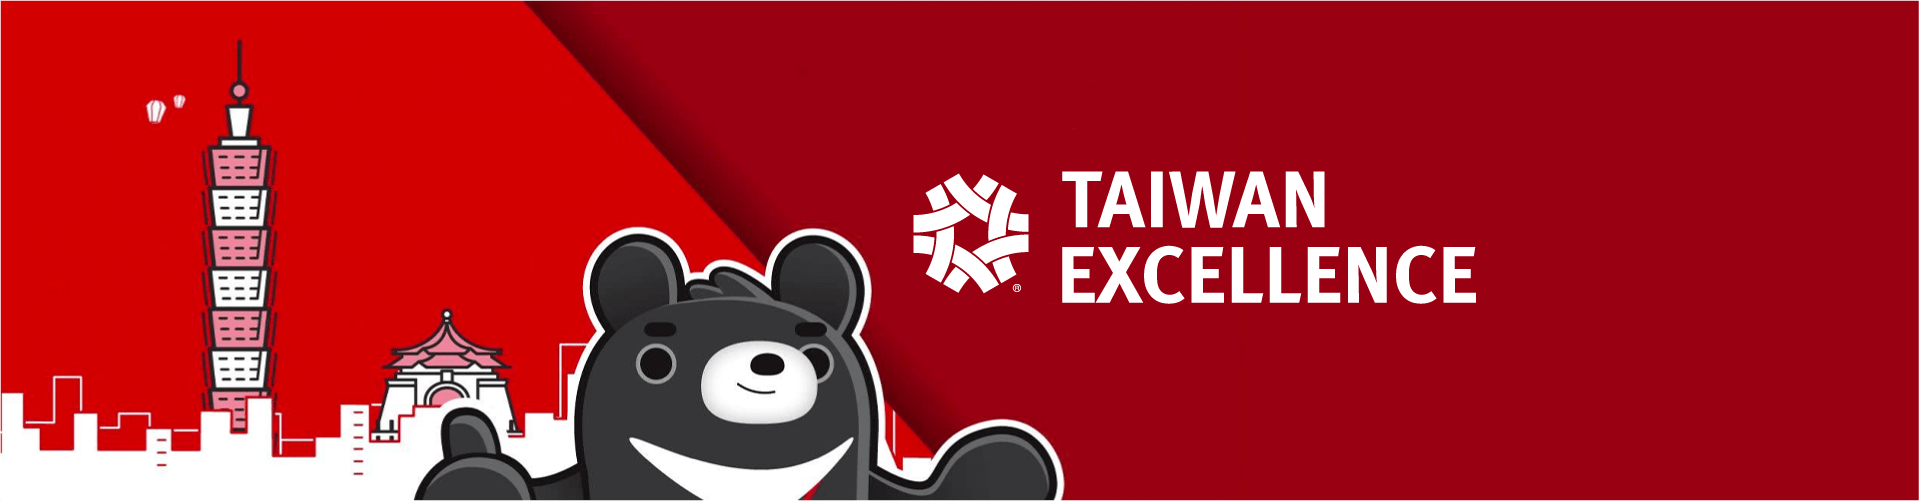 Taiwan Excellence Malaysia